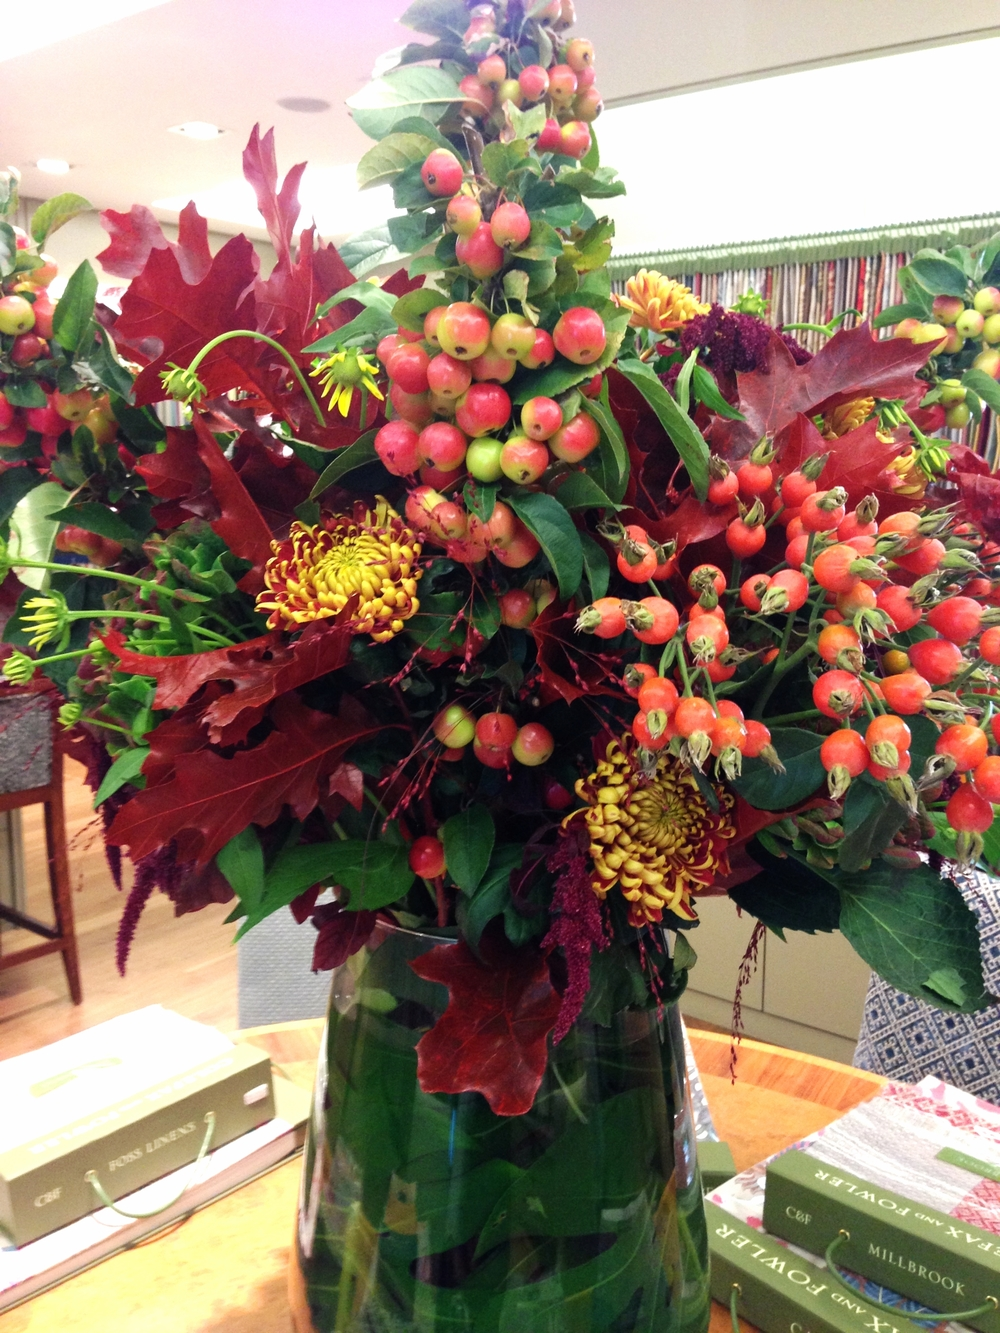 Colefax & Fowler showroom - flowers by my friend Jayne Copperwaite Flowers